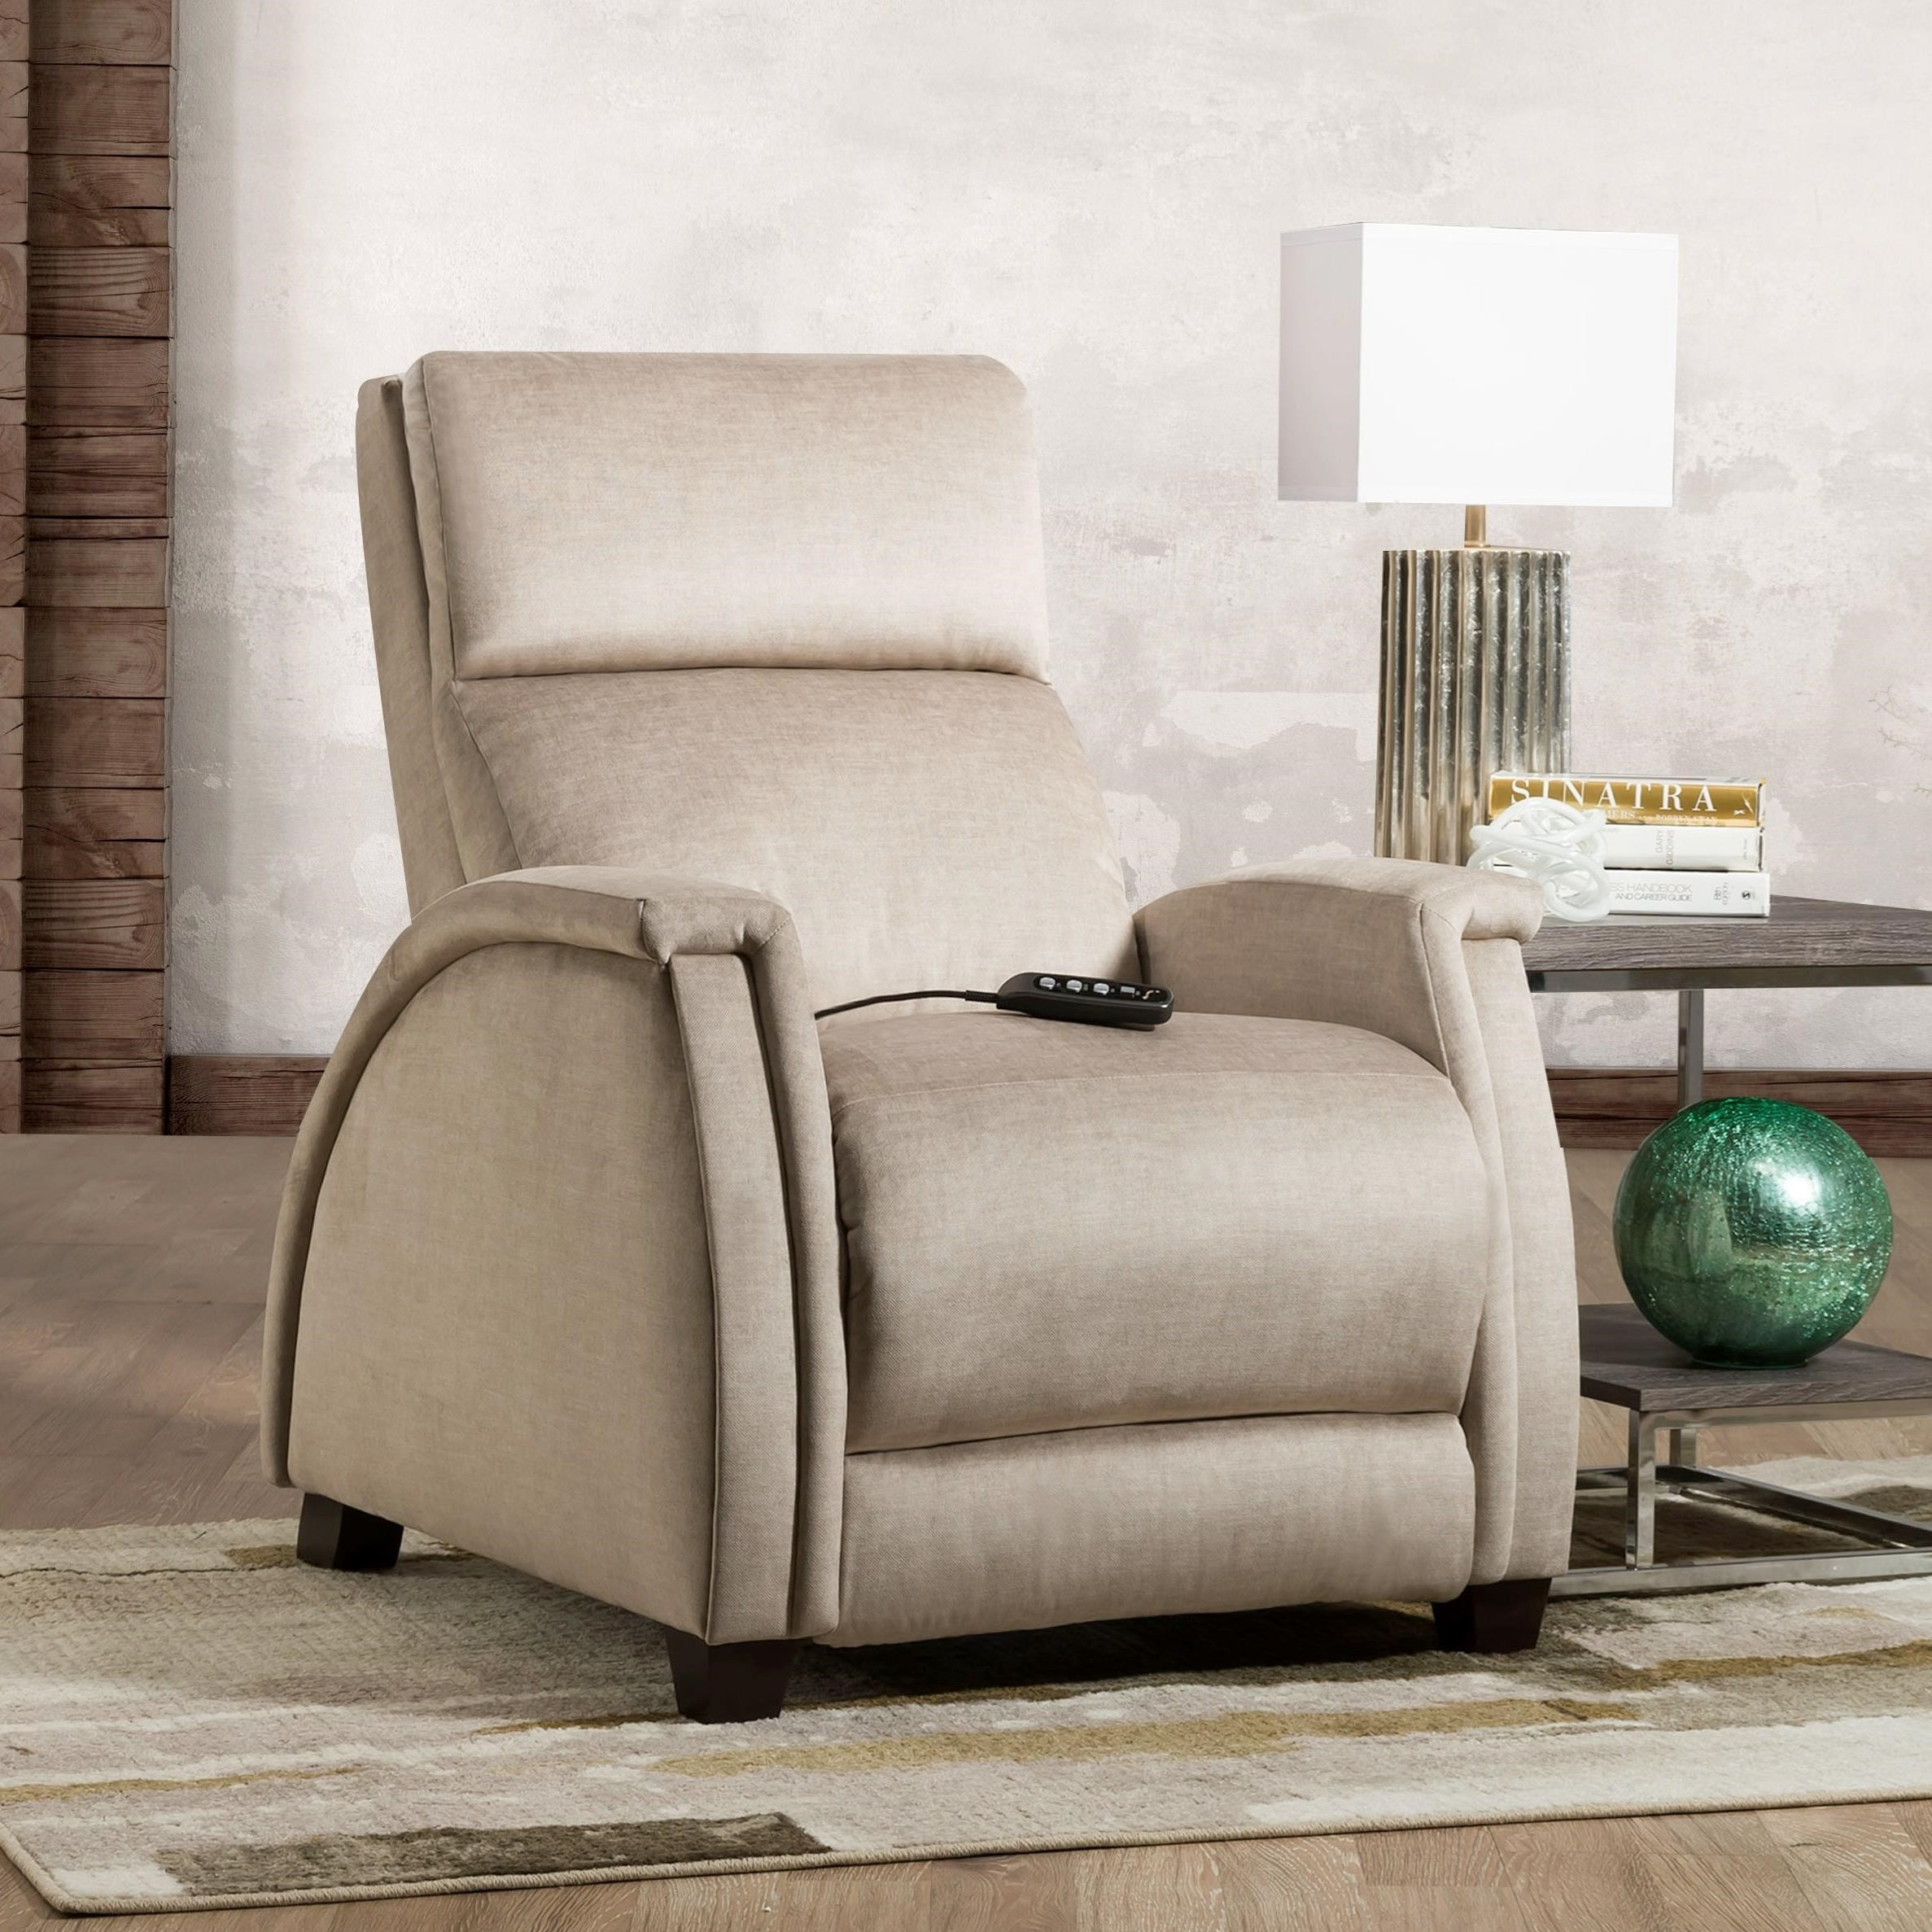 Venus Zero Gravity Wallhugger Recliner by Southern Motion at Sparks HomeStore